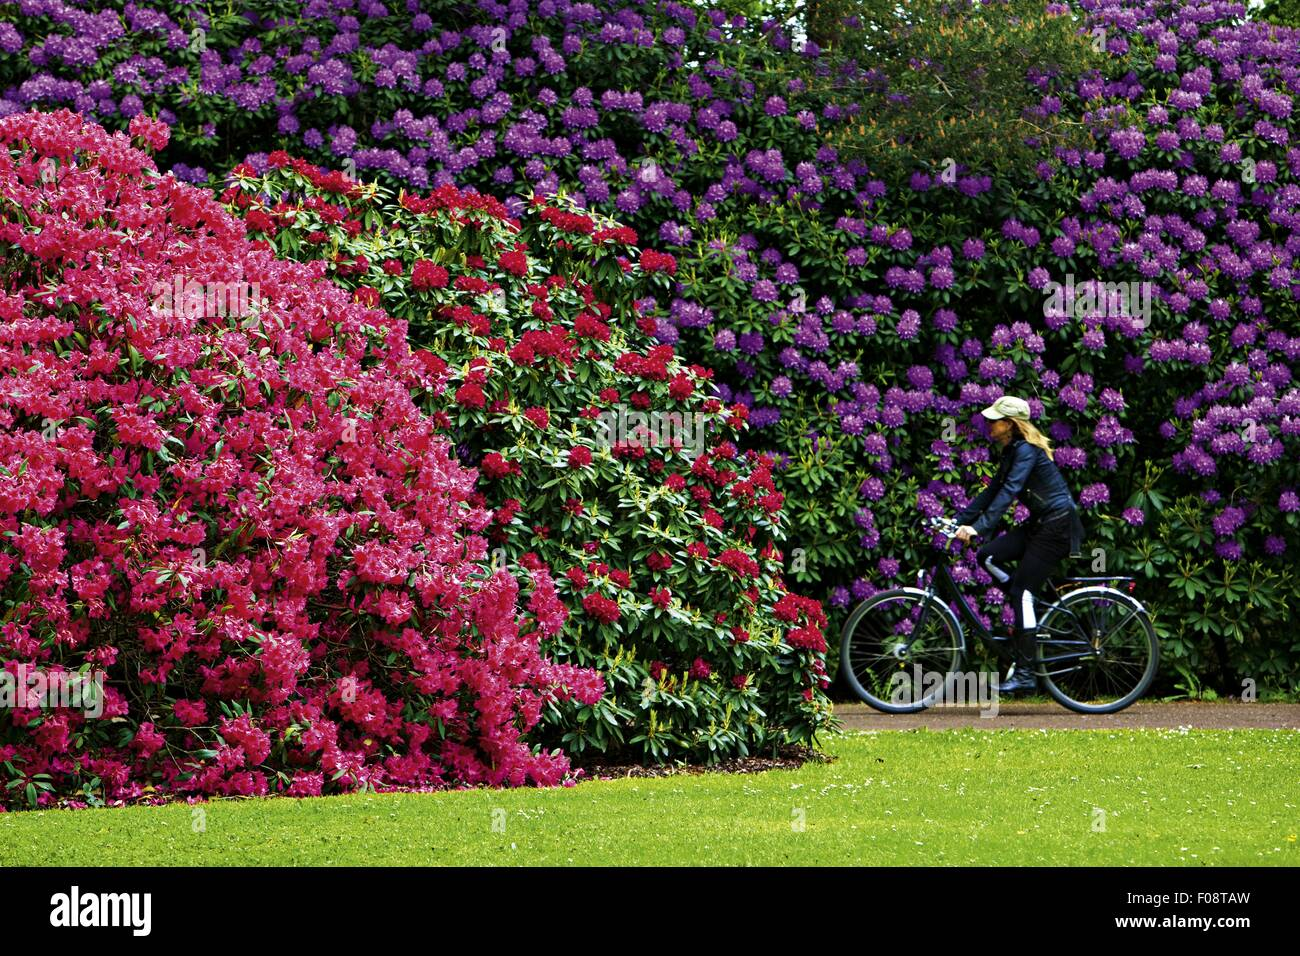 girl cycling in rhododendron park bremen germany stock photo 86246577 alamy. Black Bedroom Furniture Sets. Home Design Ideas